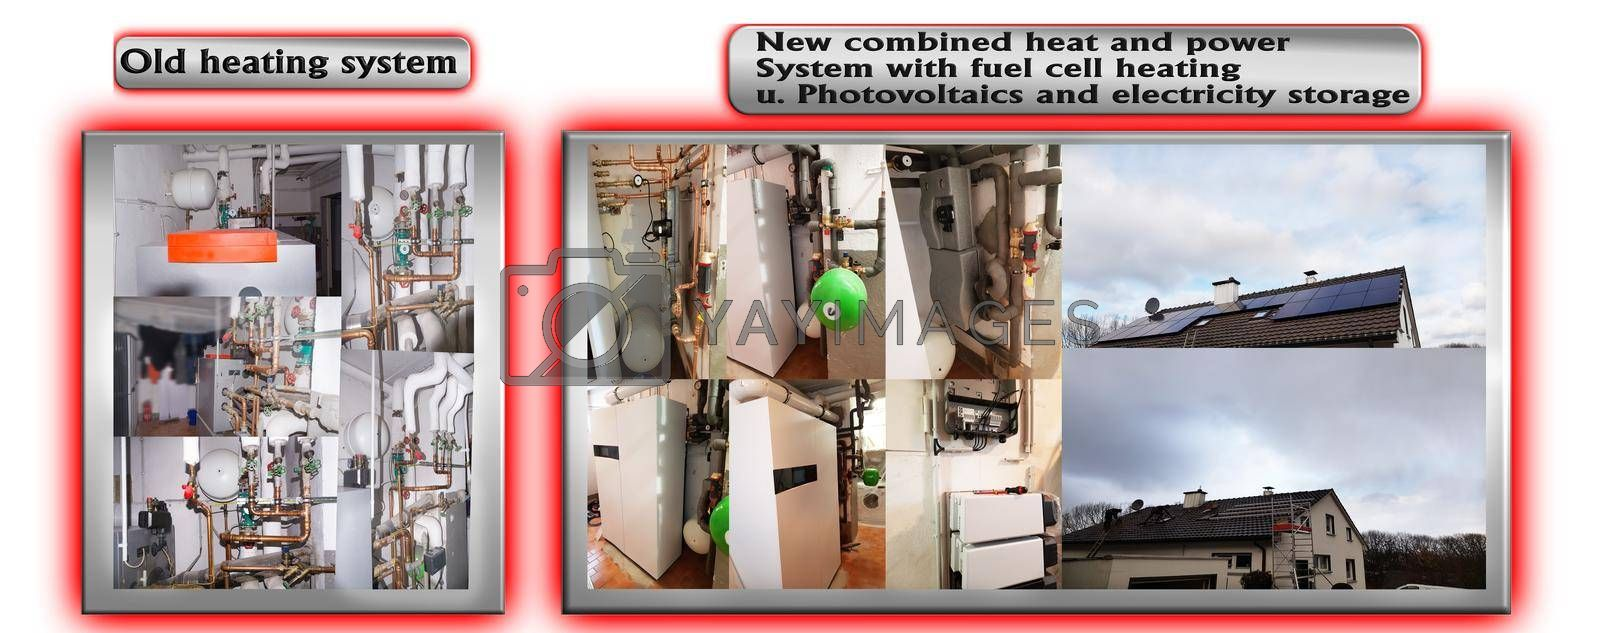 Royalty free image of Old heating system vs new heating system by JFsPic